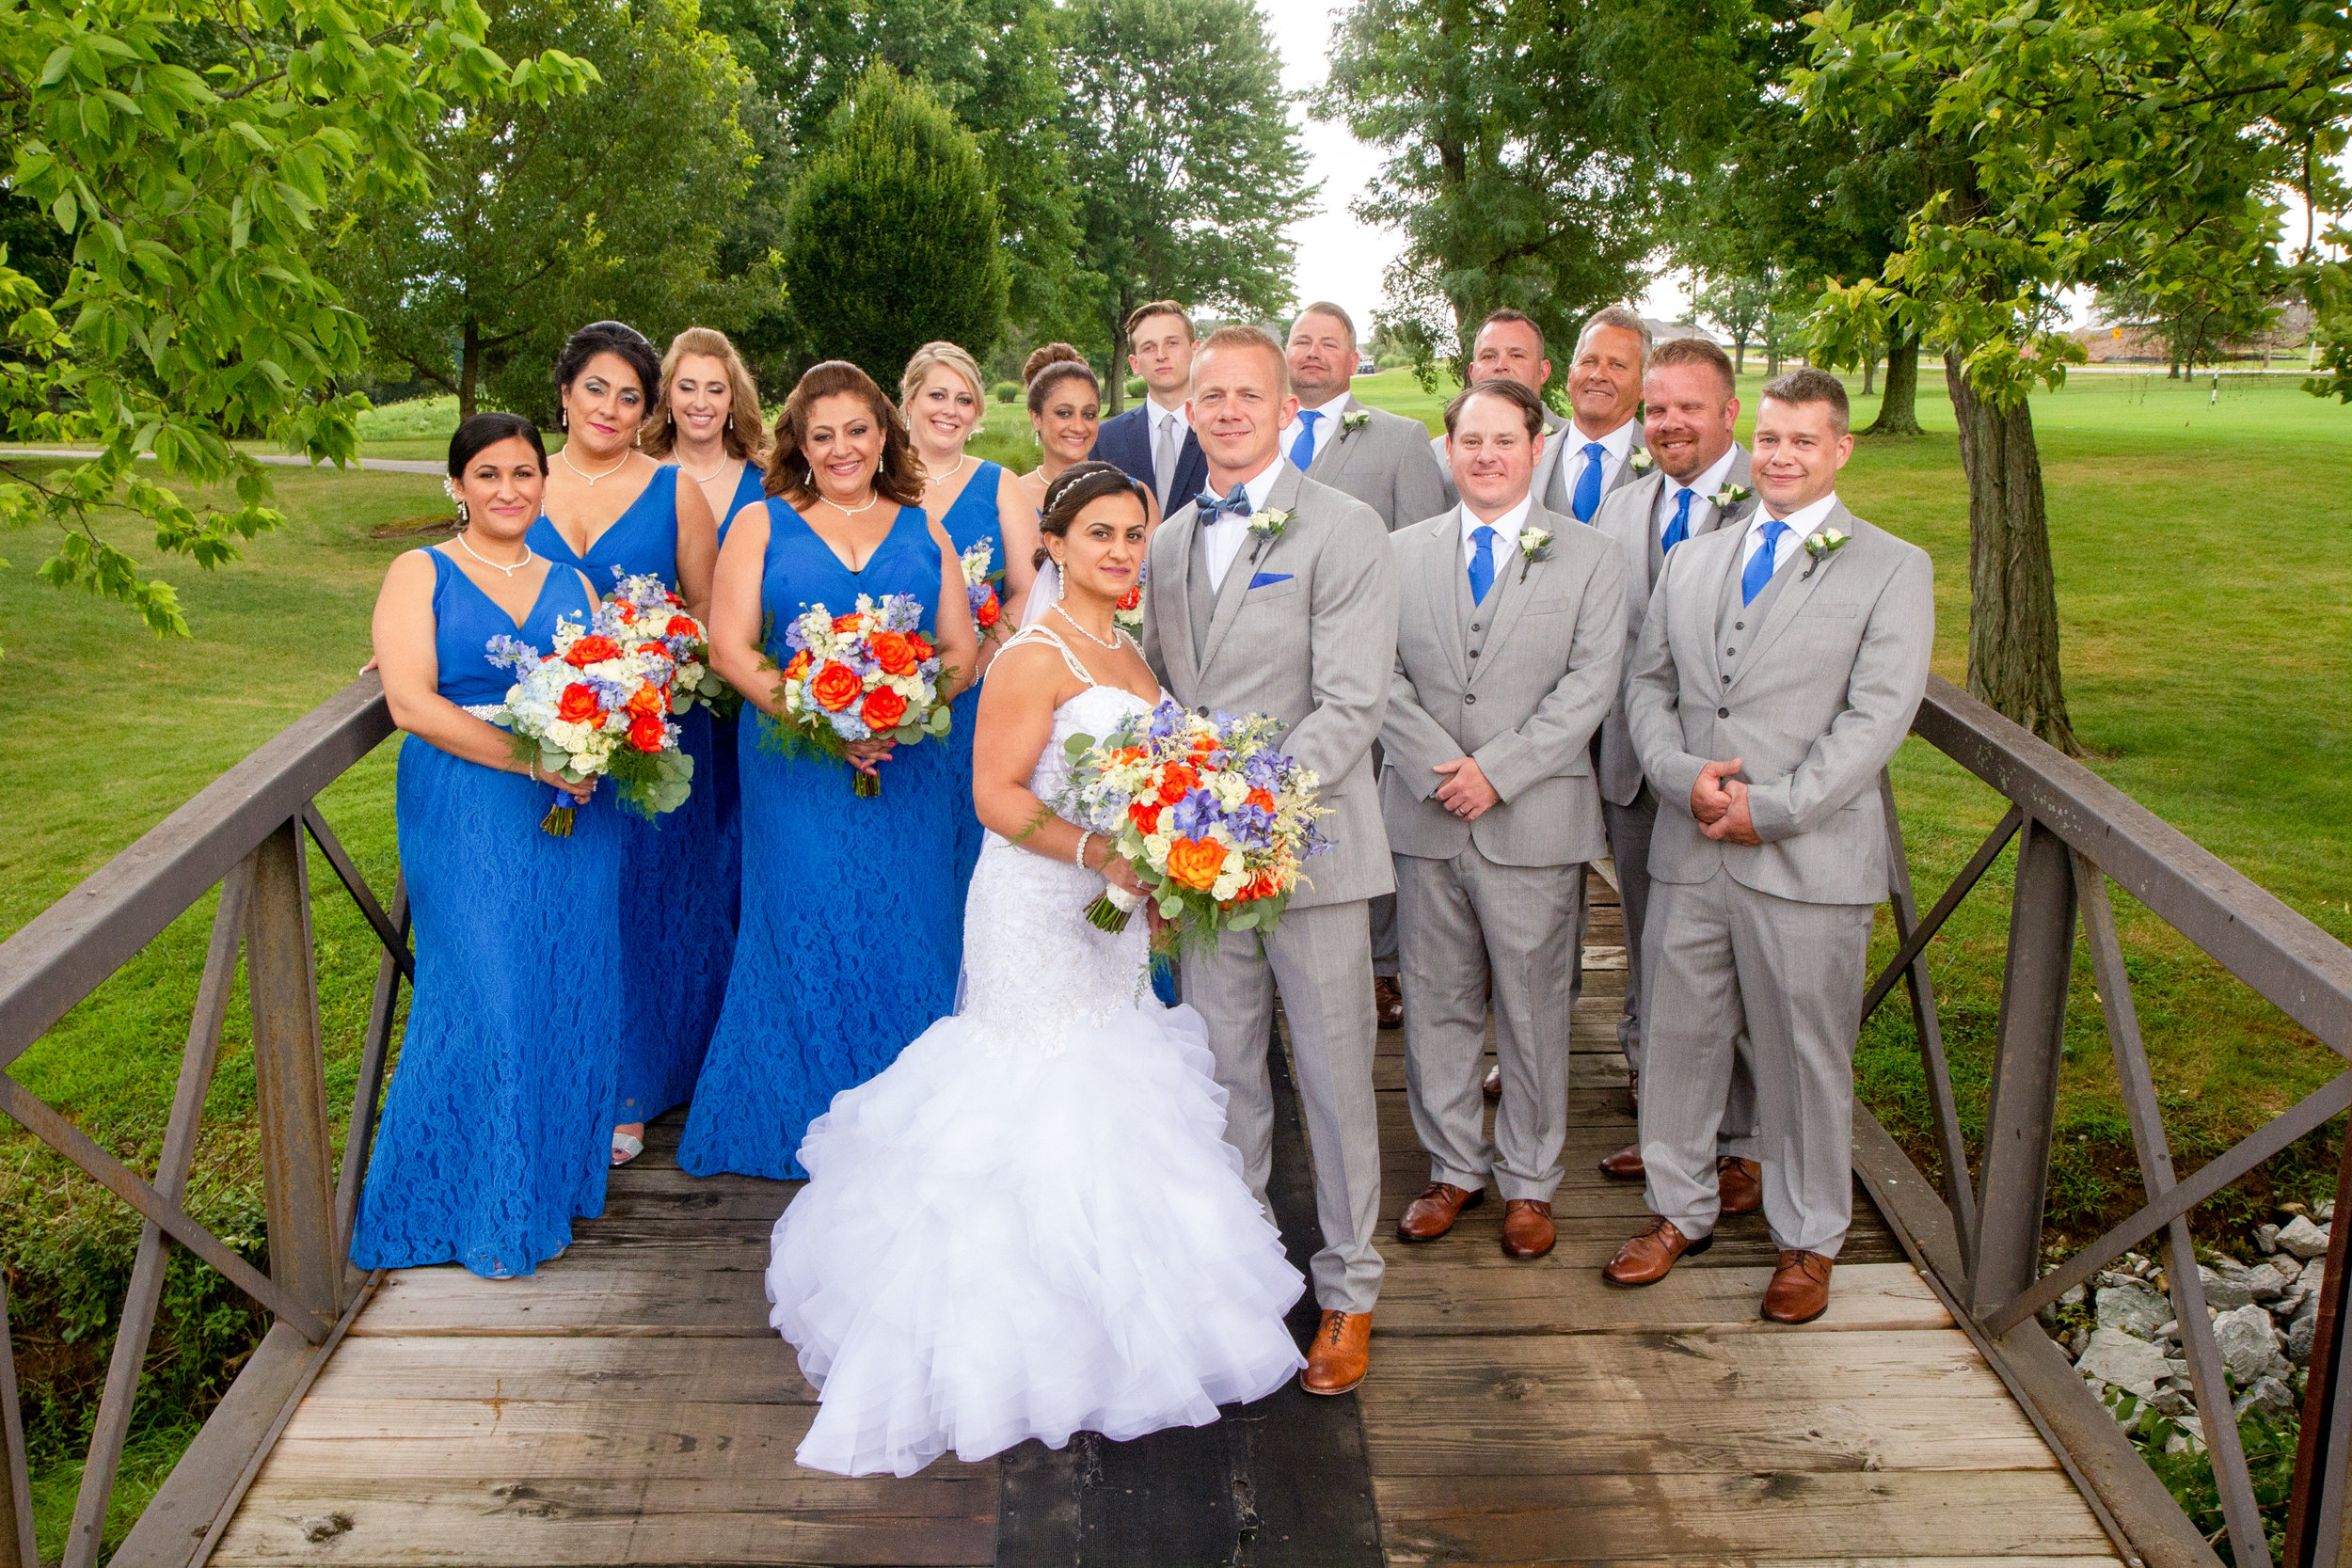 coopercreekwedding-bluewedding